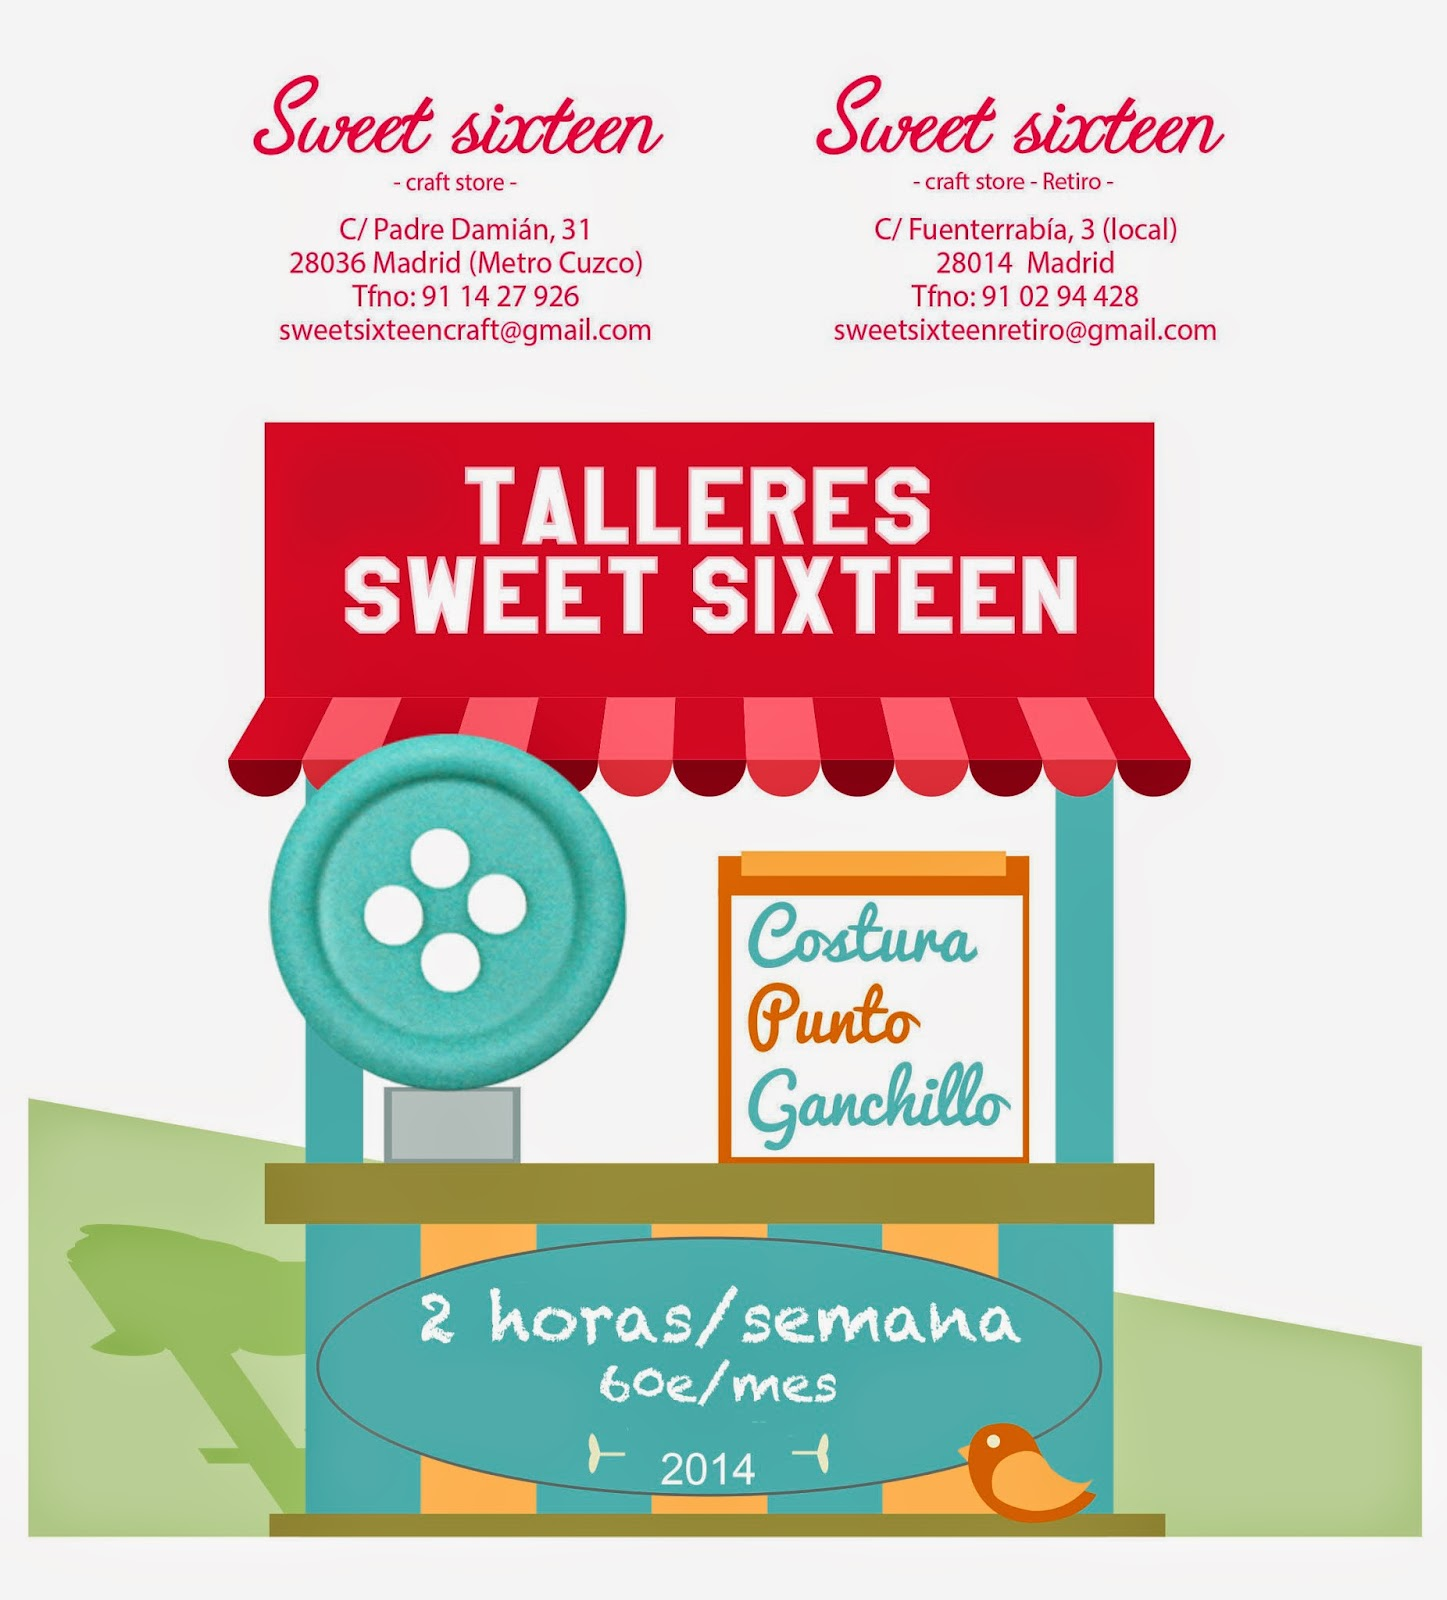 Clases continuas en Sweet sixteen craft store